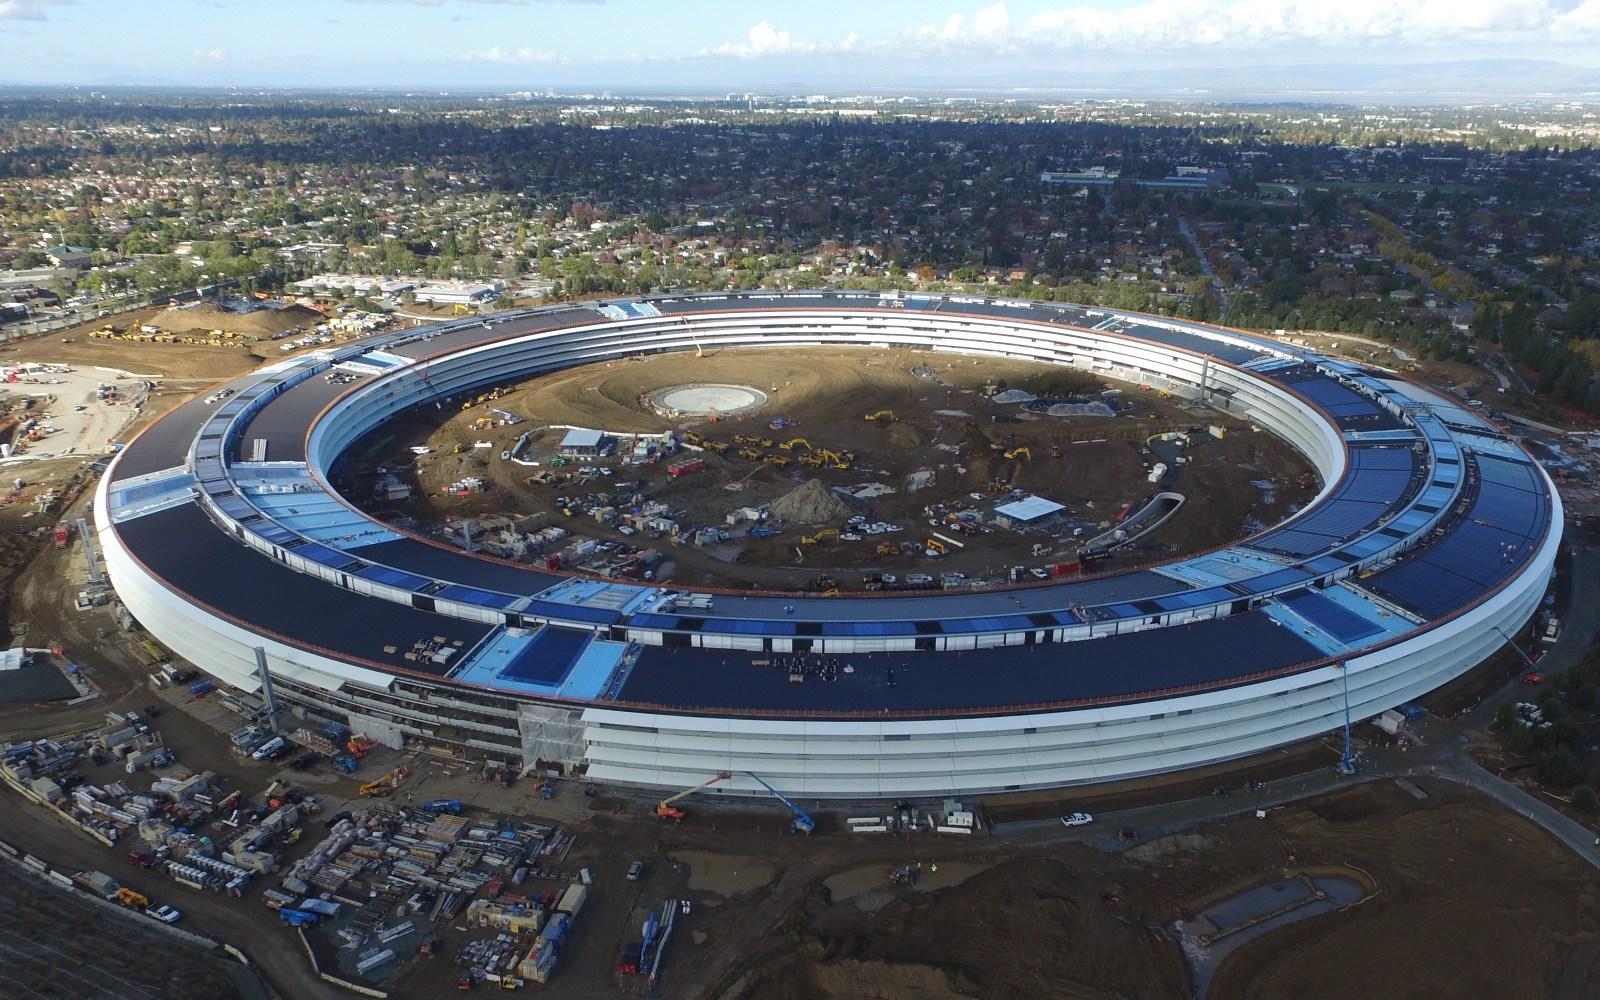 Latest Apple Campus 2 stunning drone flyover video shows complete buildings w/solar, landscaping, main atrium